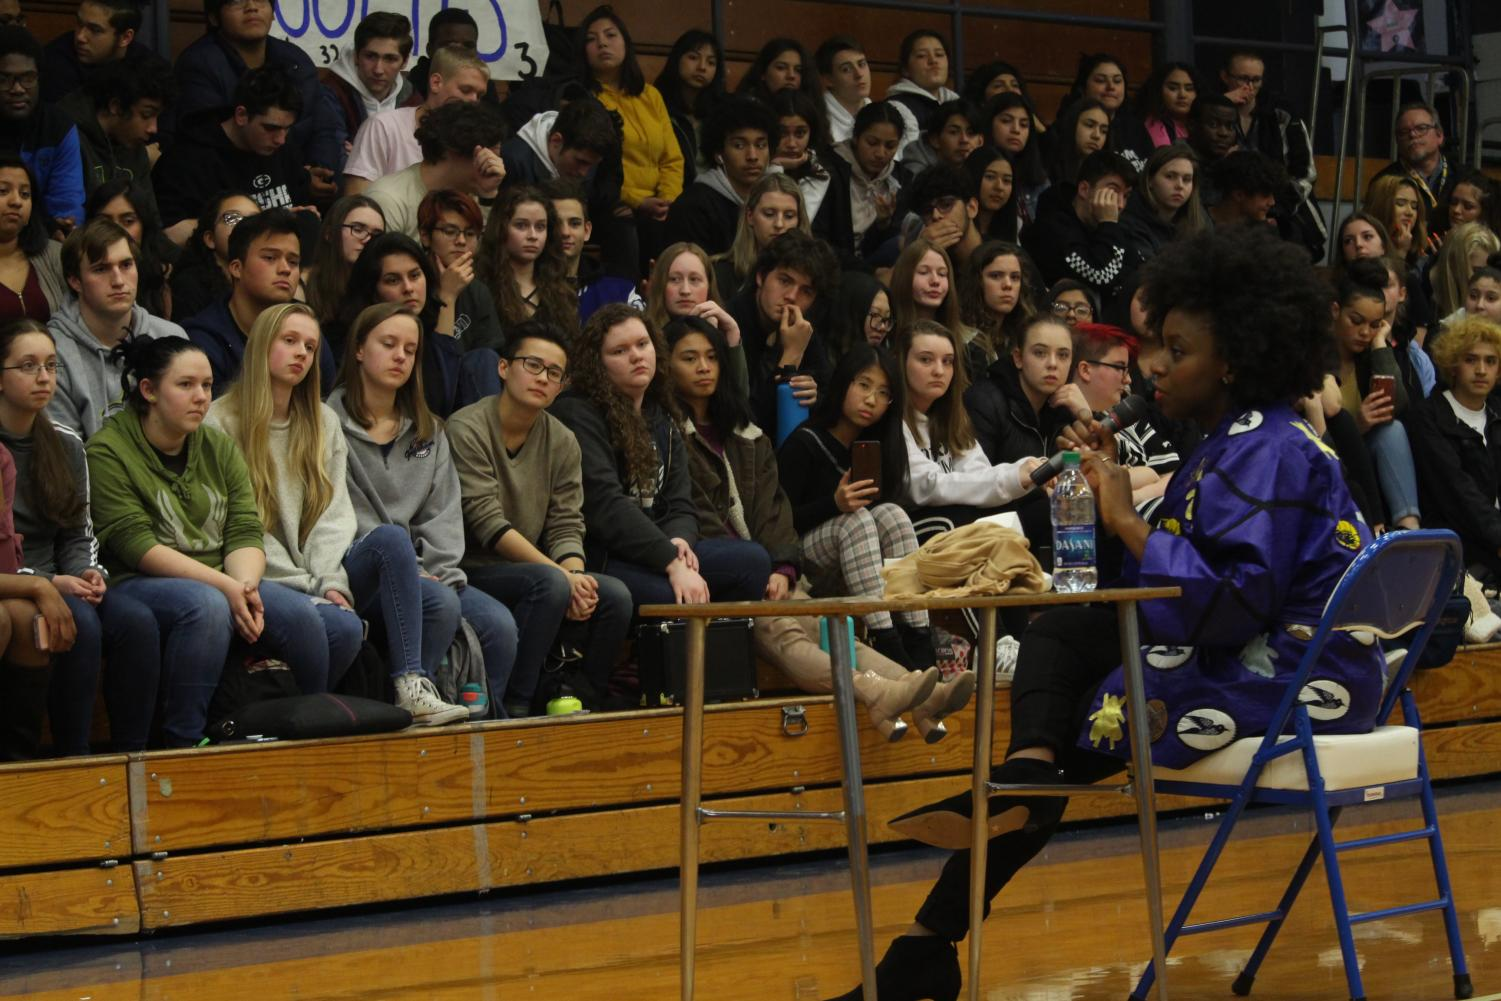 Adichie speaking to the students at assembly on March 14th.